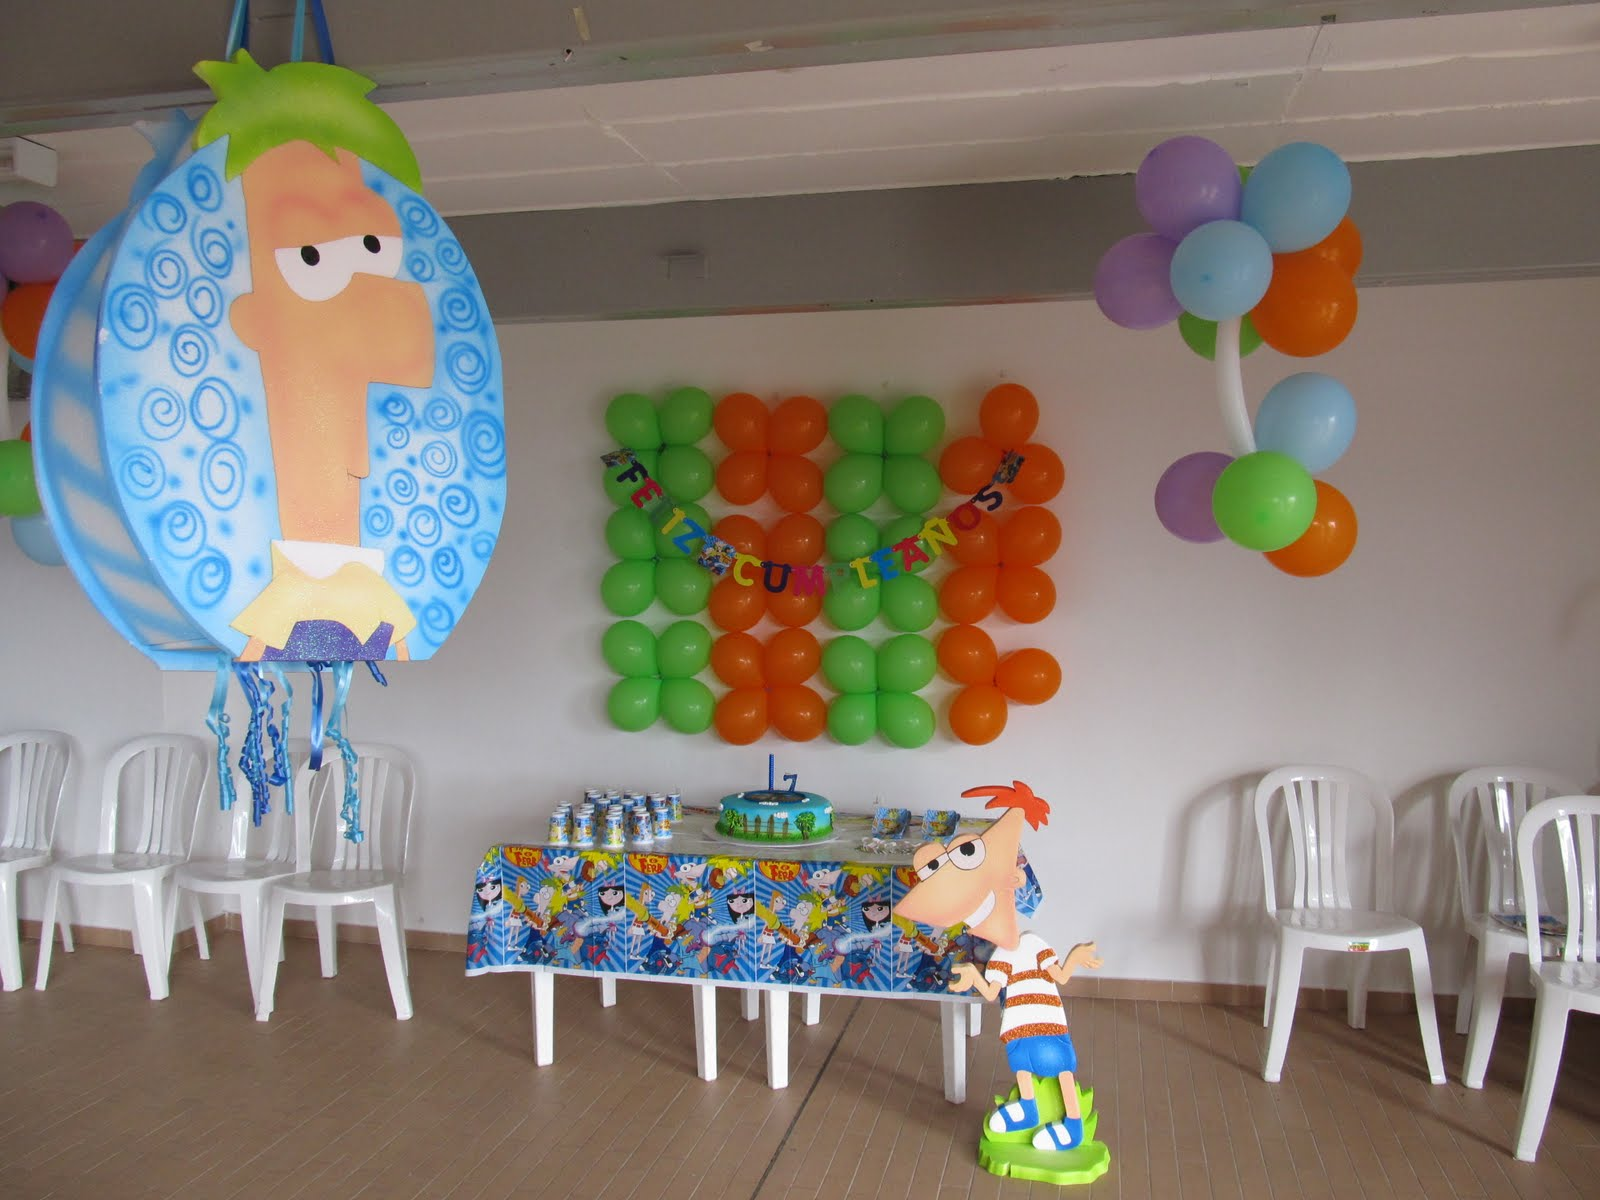 Fiestas Infantiles Medellin Decoracion Globos Recreacion